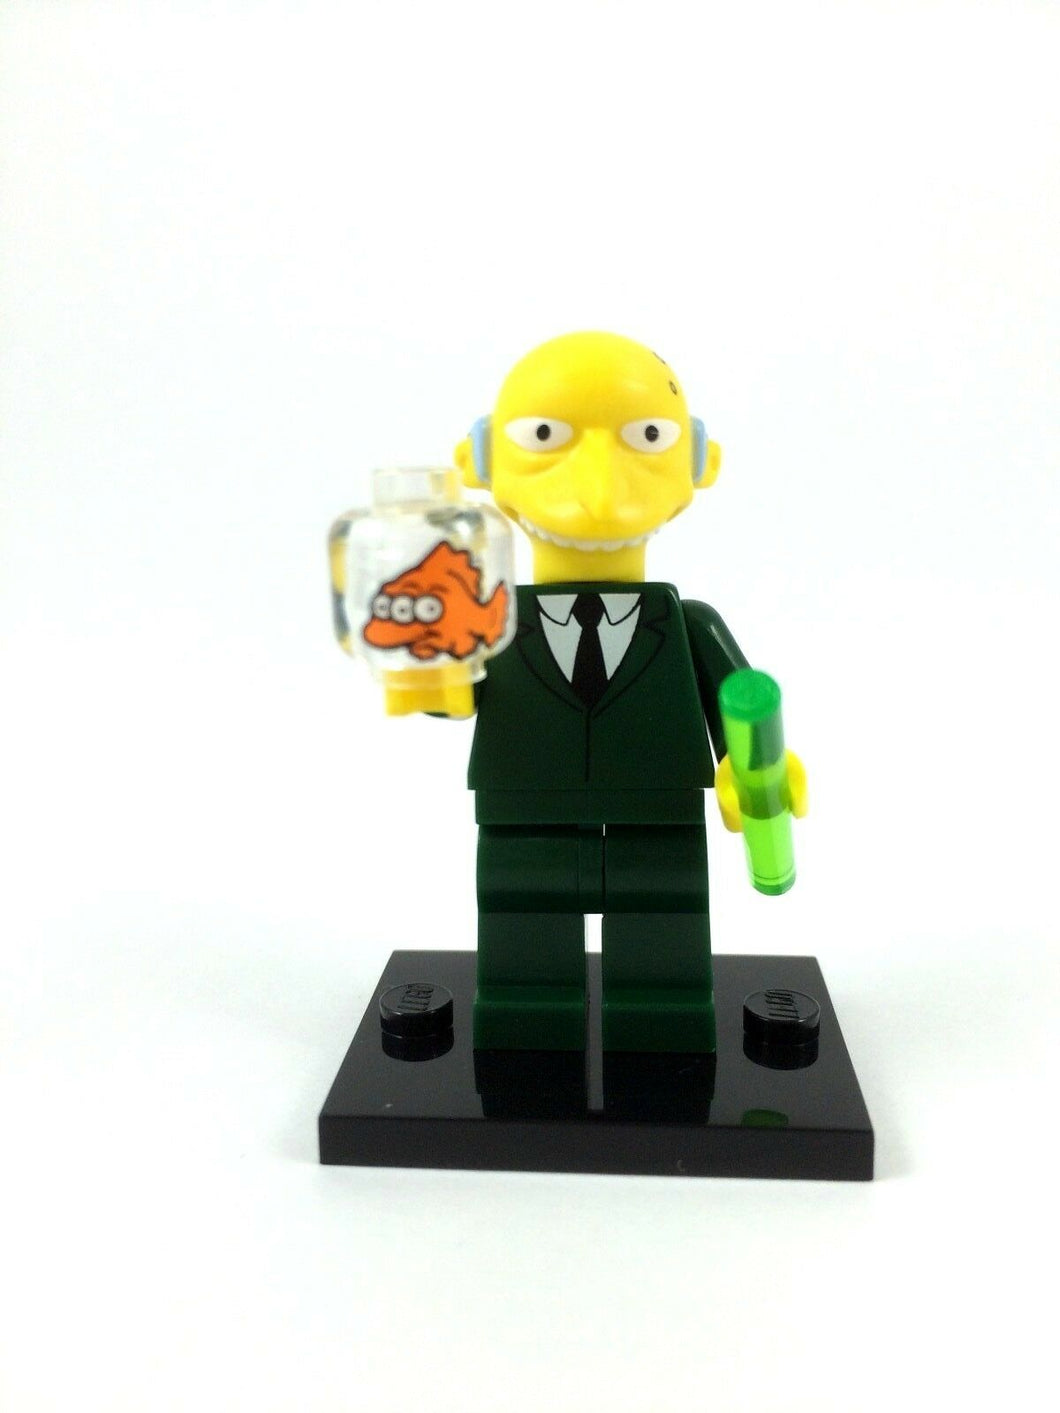 NEW LEGO 71005 MINIFIGURES SERIES S (Simpsons) - Mr. Burns